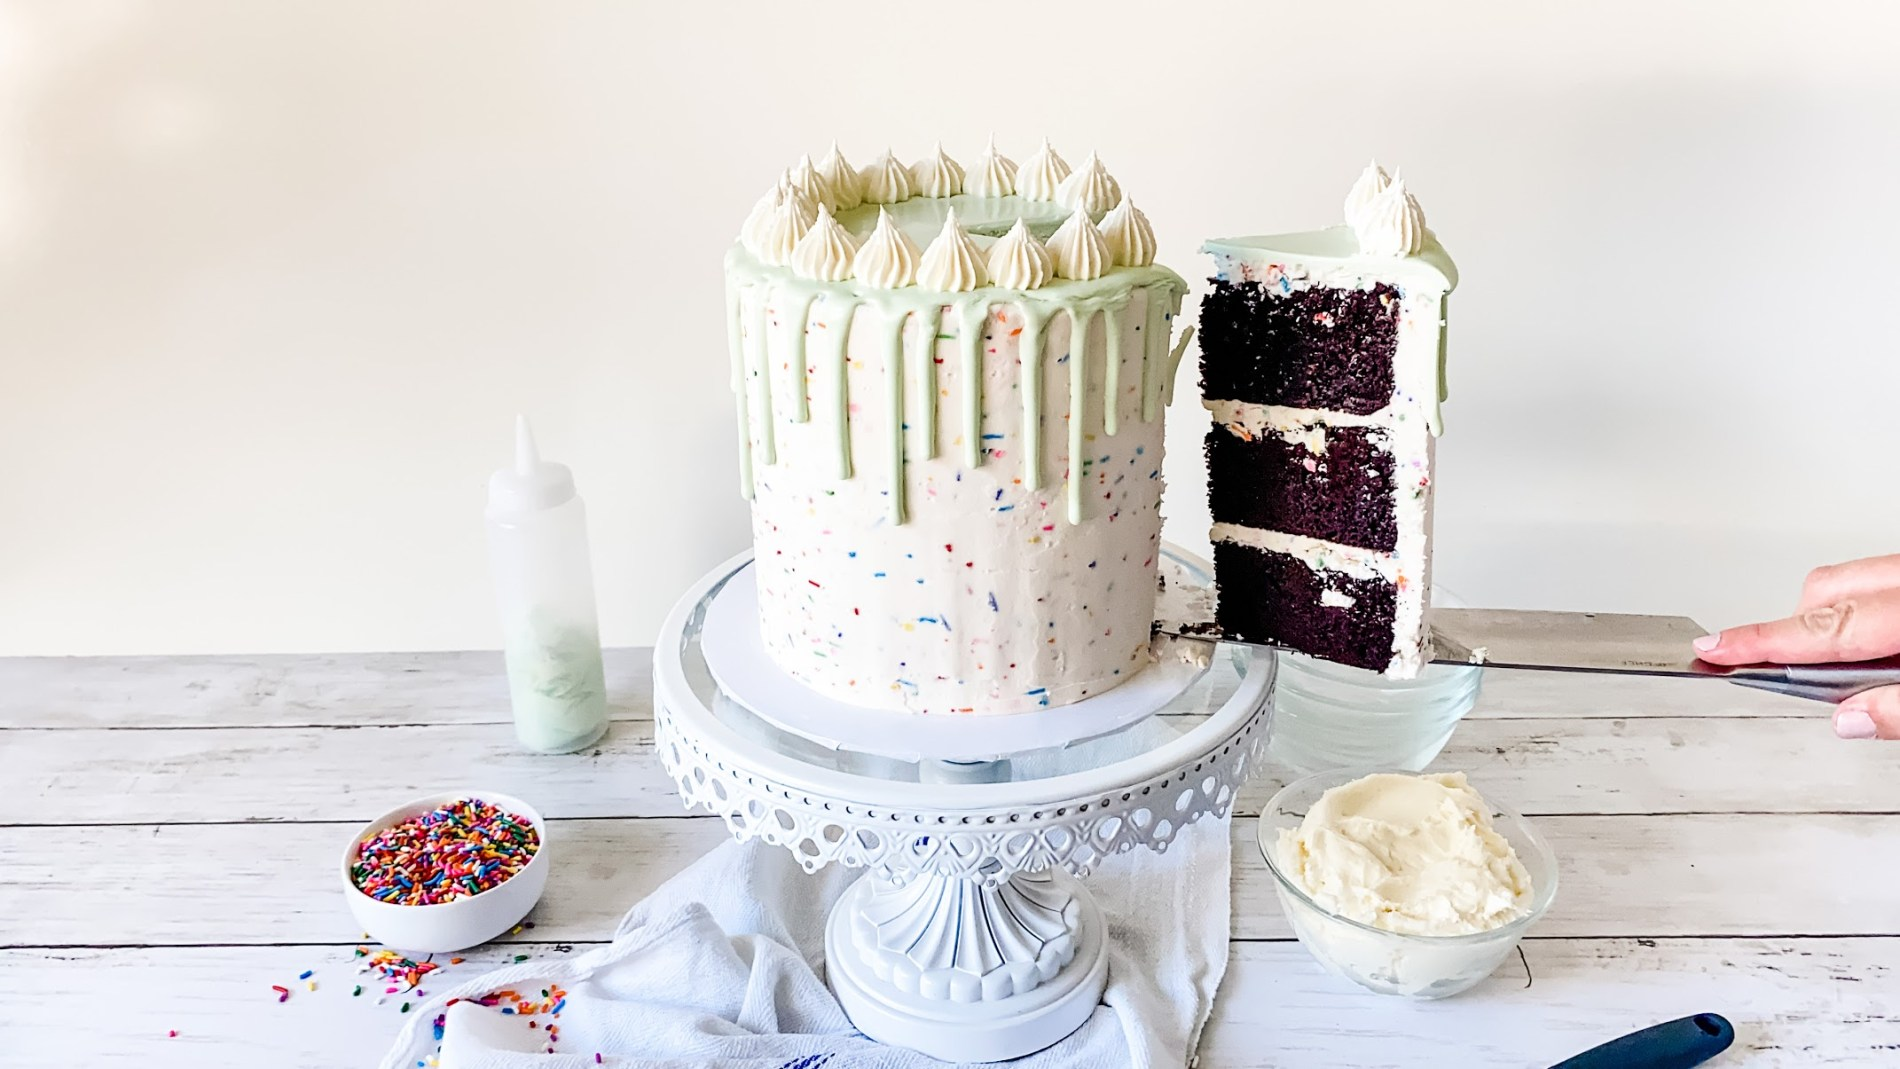 Learn how to make this simple yet sophisticated sprinkle buttercream cake! This Sprinkle Buttercream Cake is made with chocolate cake layers, filled with sprinkle vanilla buttercream and mint-colored candy dripping over the sides. Created by Katie Rosario, XOKatieRosario creates beautiful cake decorating techniques that are easy for beginners and strategically designed for any home baker. #xokatierosario #katierosariocake #cakedecorating #sprinkles #easybuttercream #cakedecoratingcourse